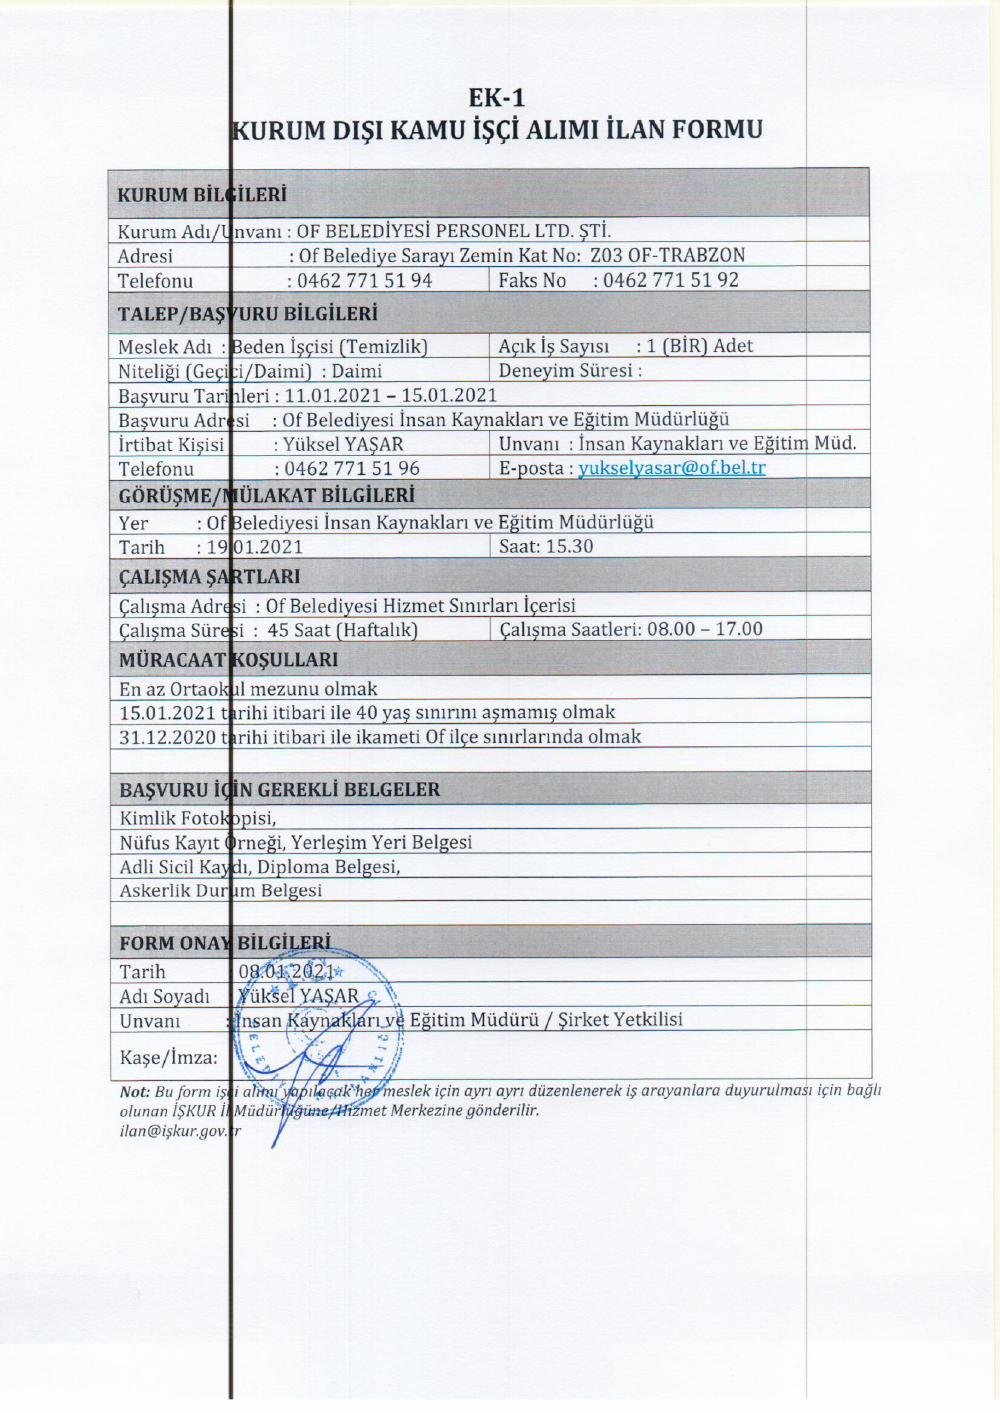 trabzon-of-belediyesi-personel-limited-sirketi-15-01-2021-000004.png